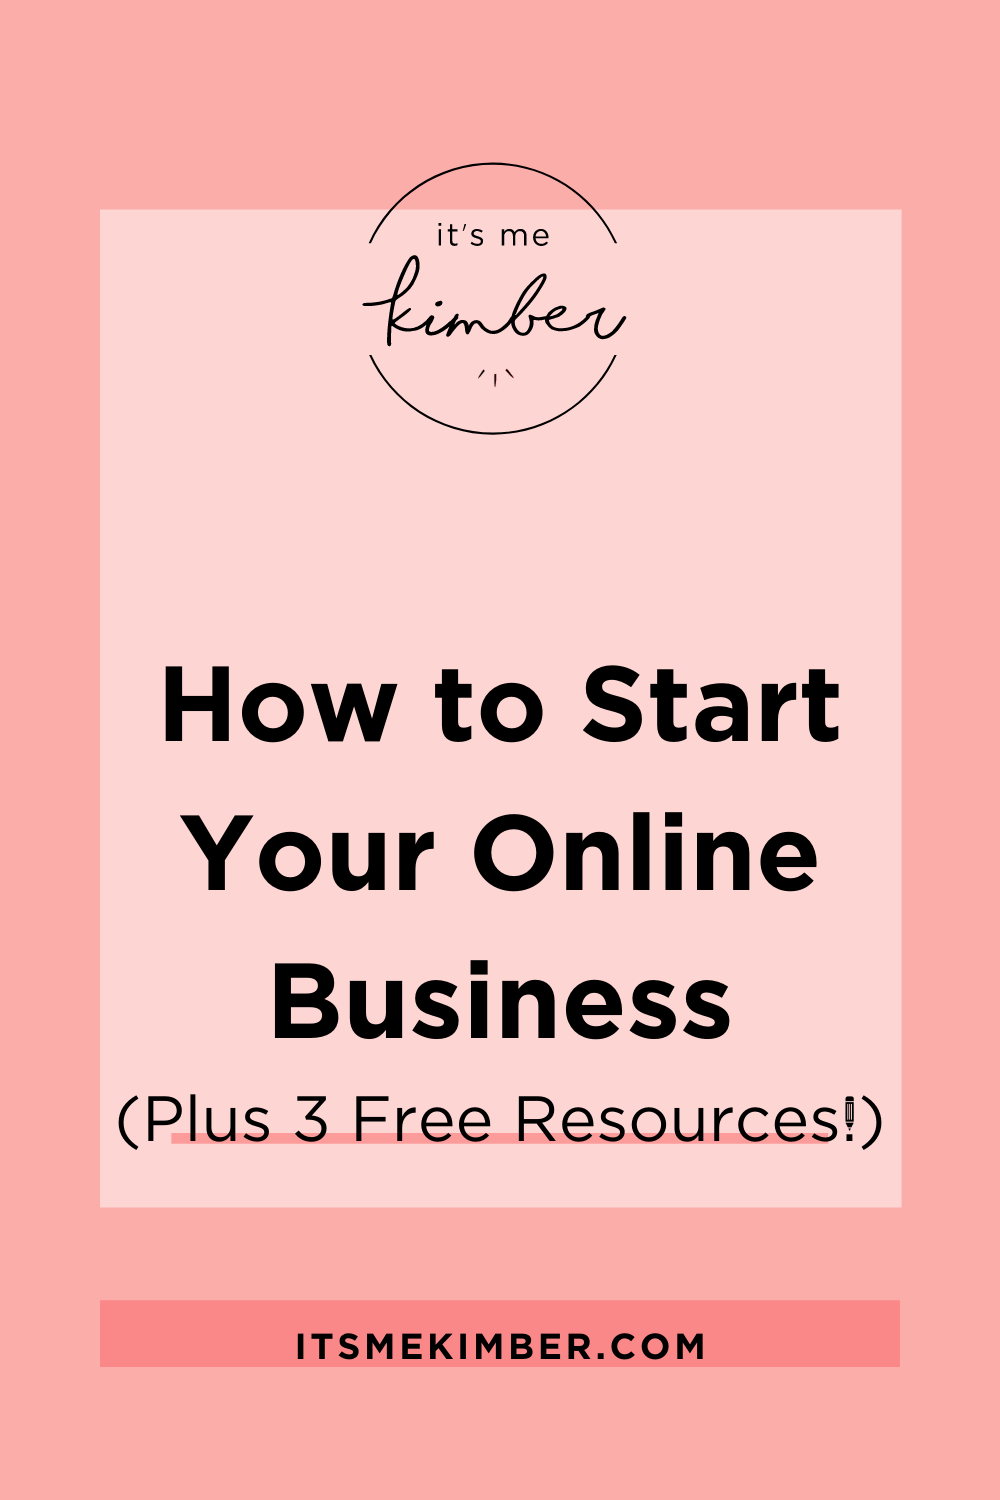 Start An Online Business Step By Step Guide For Beginners Starting A Business Ideas Of Starting A Busi In 2020 Online Business Online Business Marketing Business